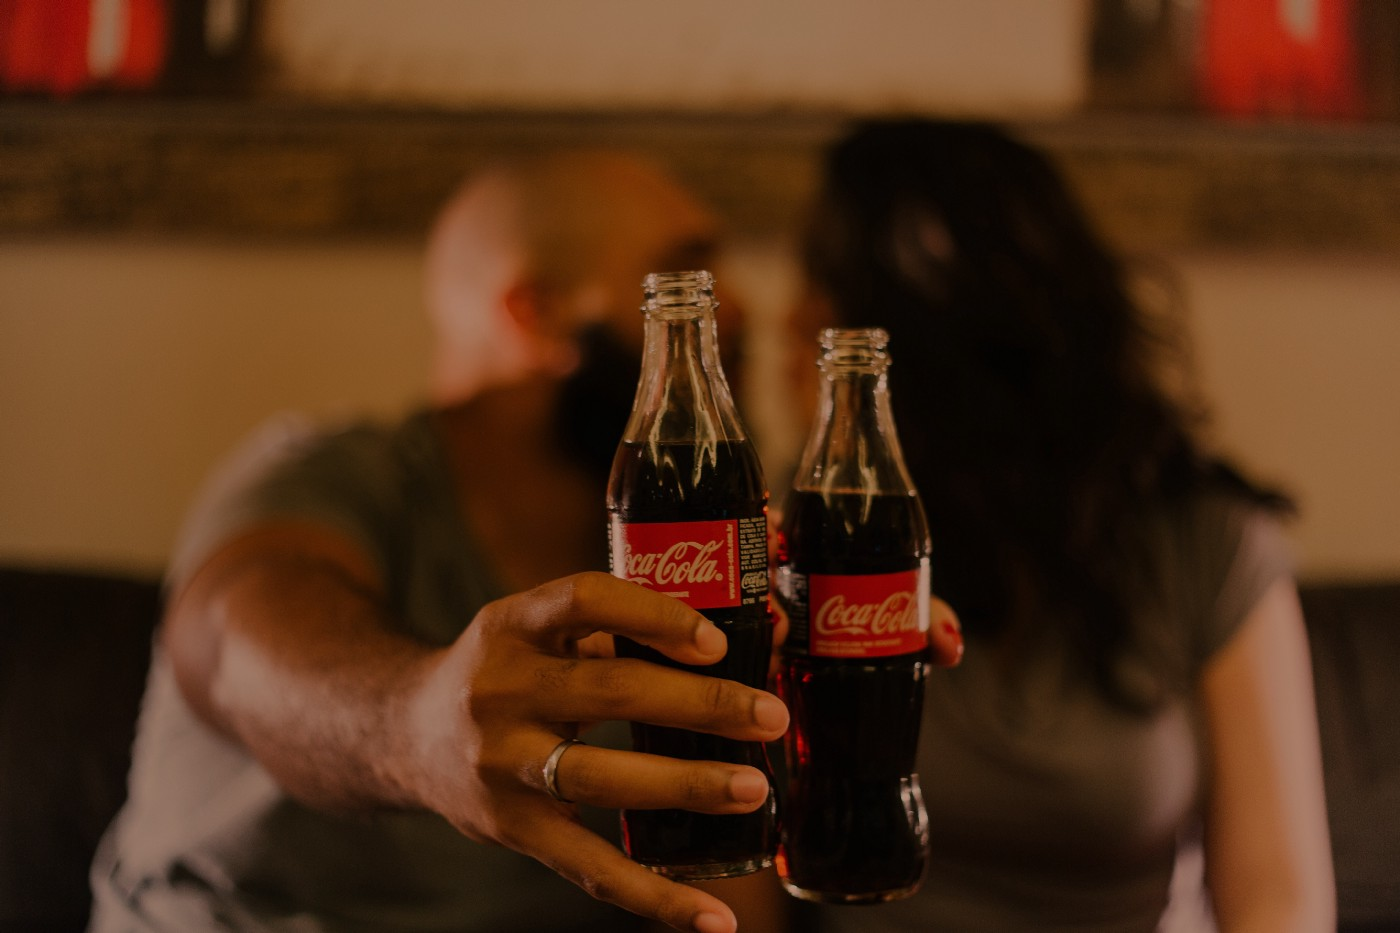 Two people hold up Coca-Cola bottles.